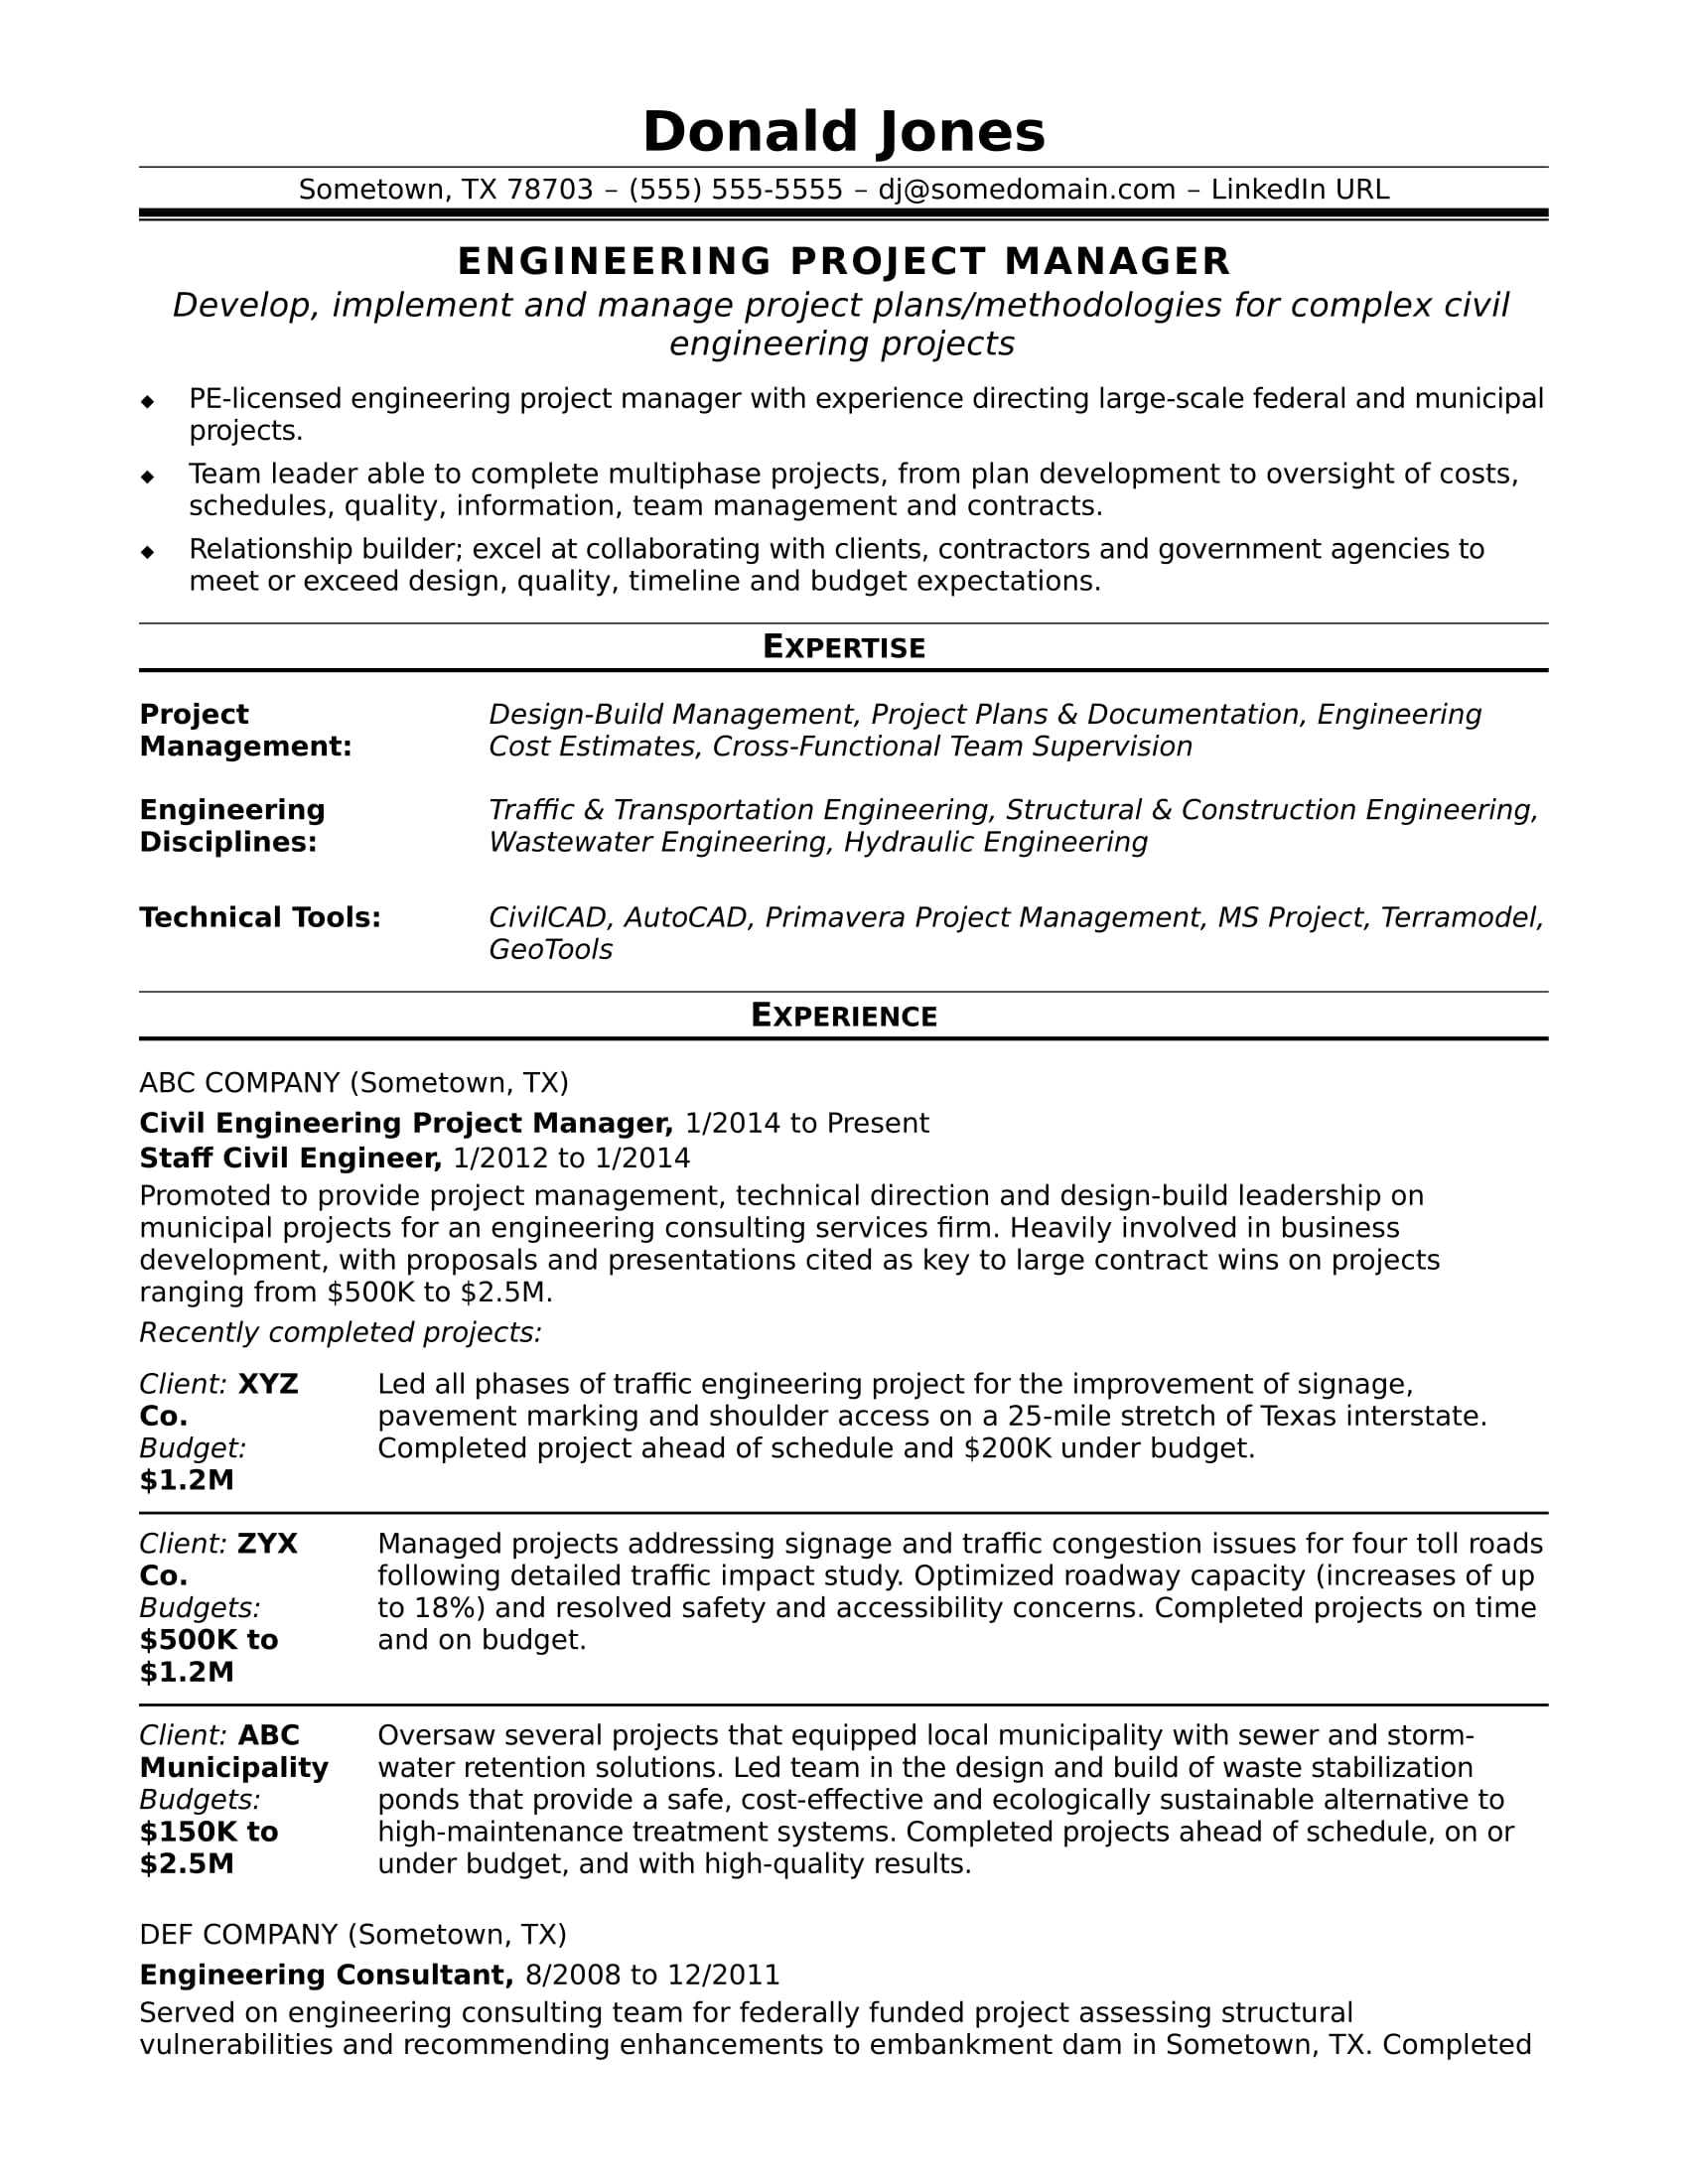 Sample resume for a midlevel engineering project manager monster sample resume for a midlevel engineering project manager yelopaper Choice Image